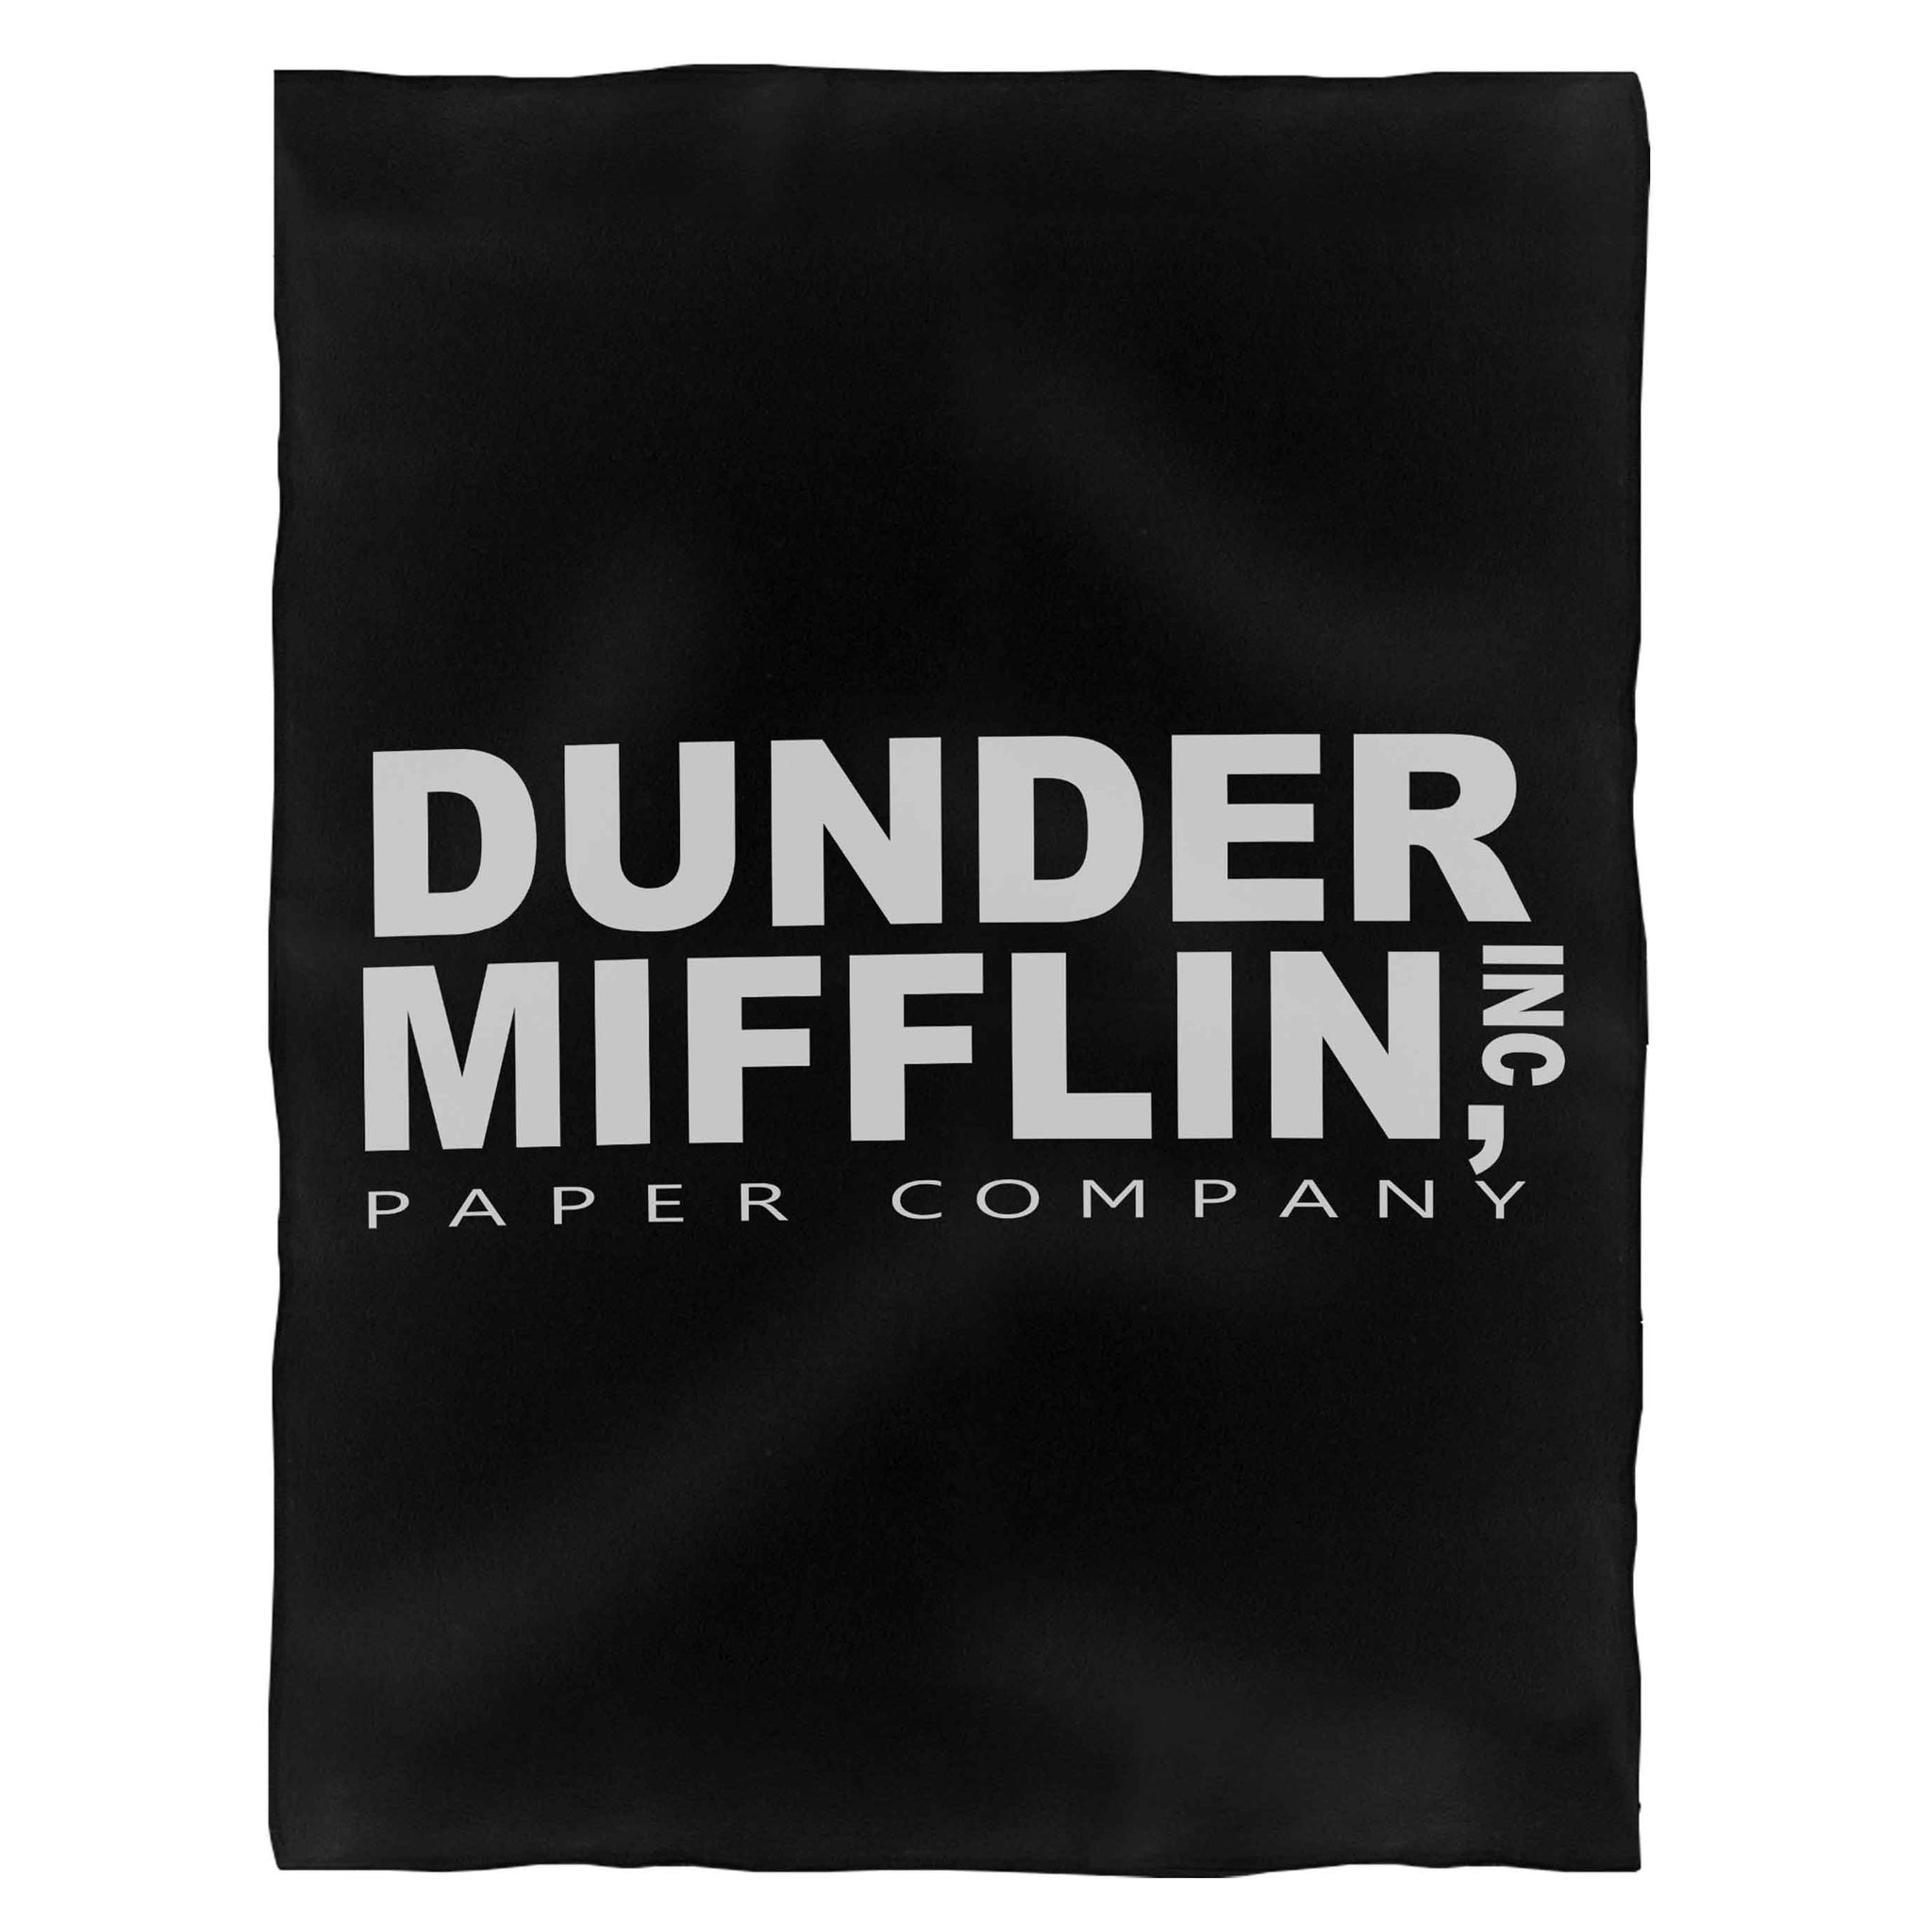 The Office Dunder Mifflin Inc Corporation Incorporated Paper Company Fleece Blanket